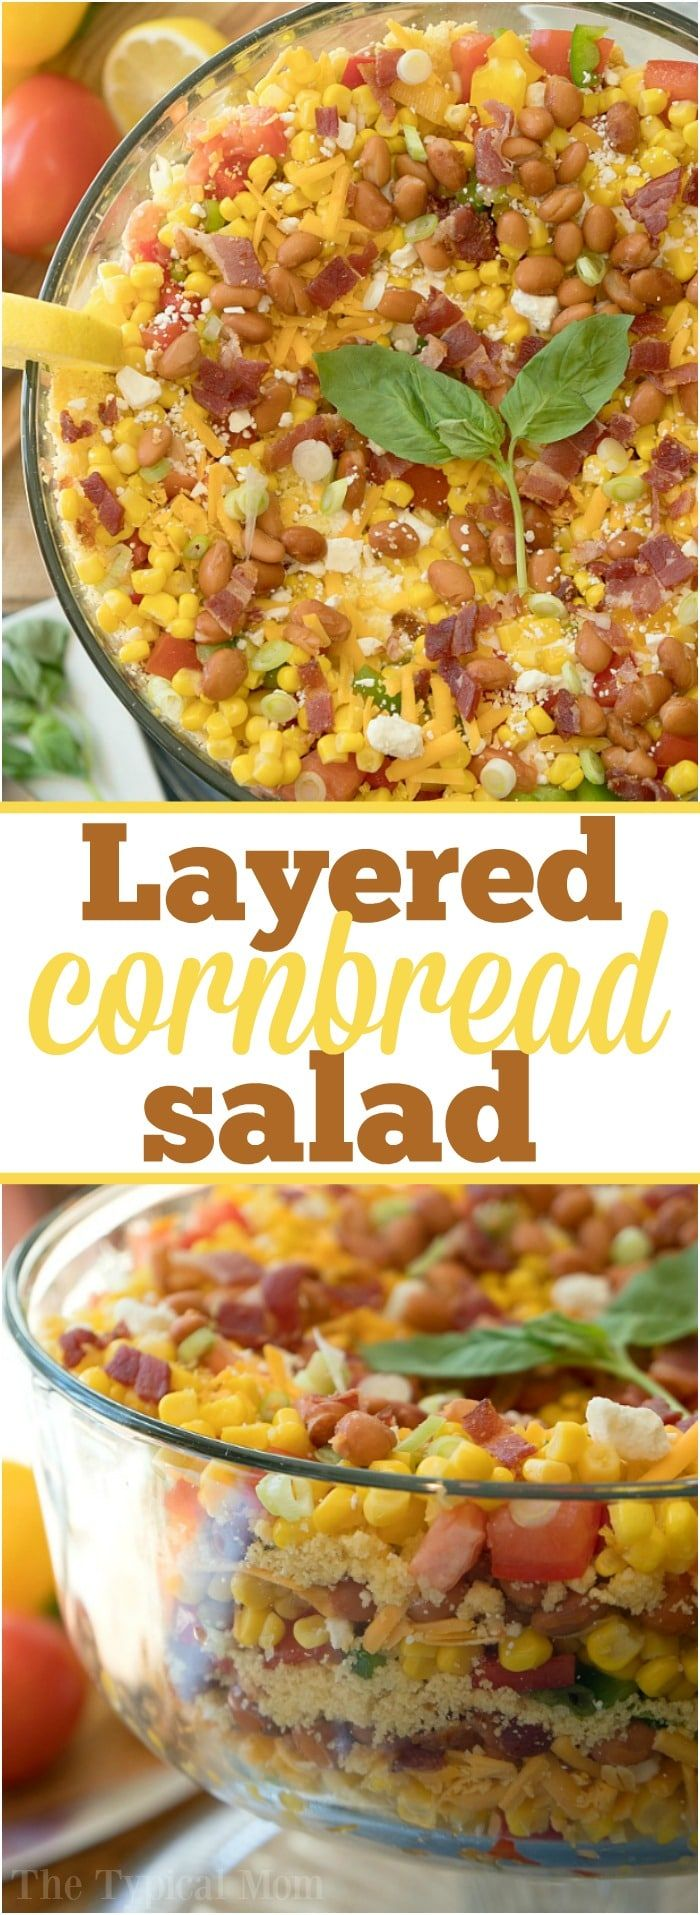 This easy layered cornbread salad recipe is a perfect side dish during the holidays or a barbecue! Layers of corn, cheese and more make it irresistible! via @thetypicalmom